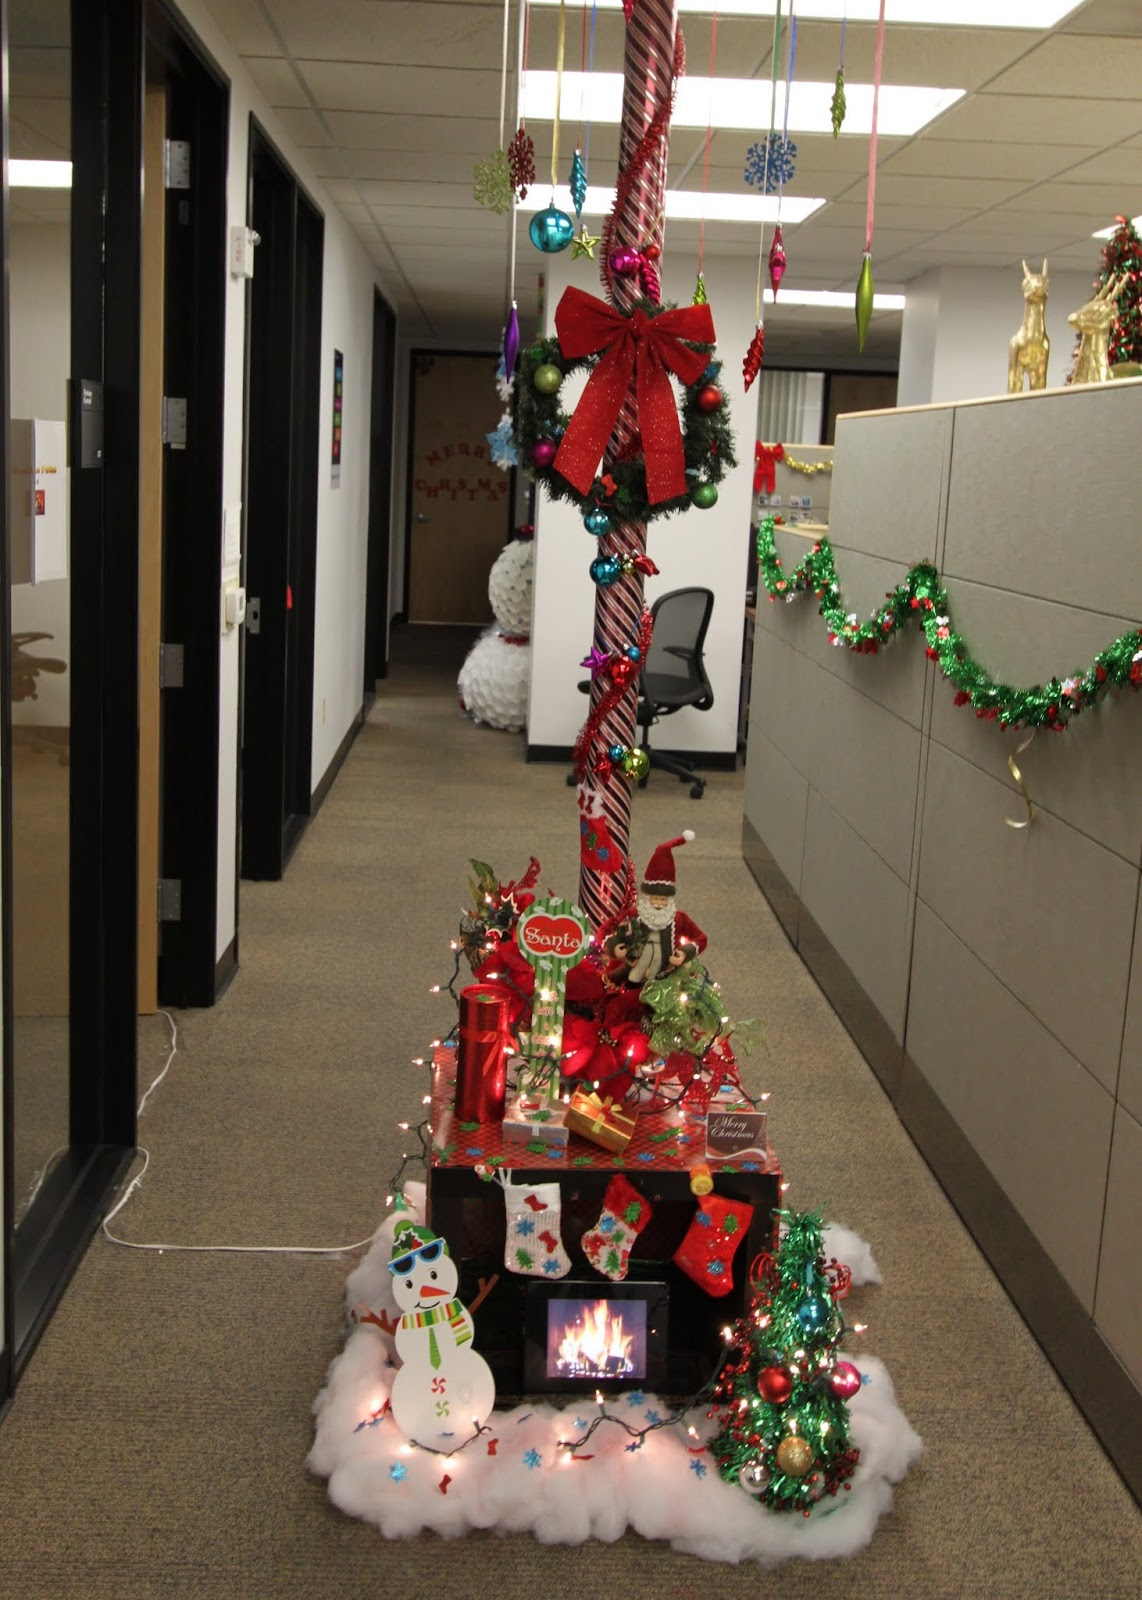 office xmas decoration ideas. Office Holiday Decor. Christmas Pole Decorating Contest Decor I Xmas Decoration Ideas